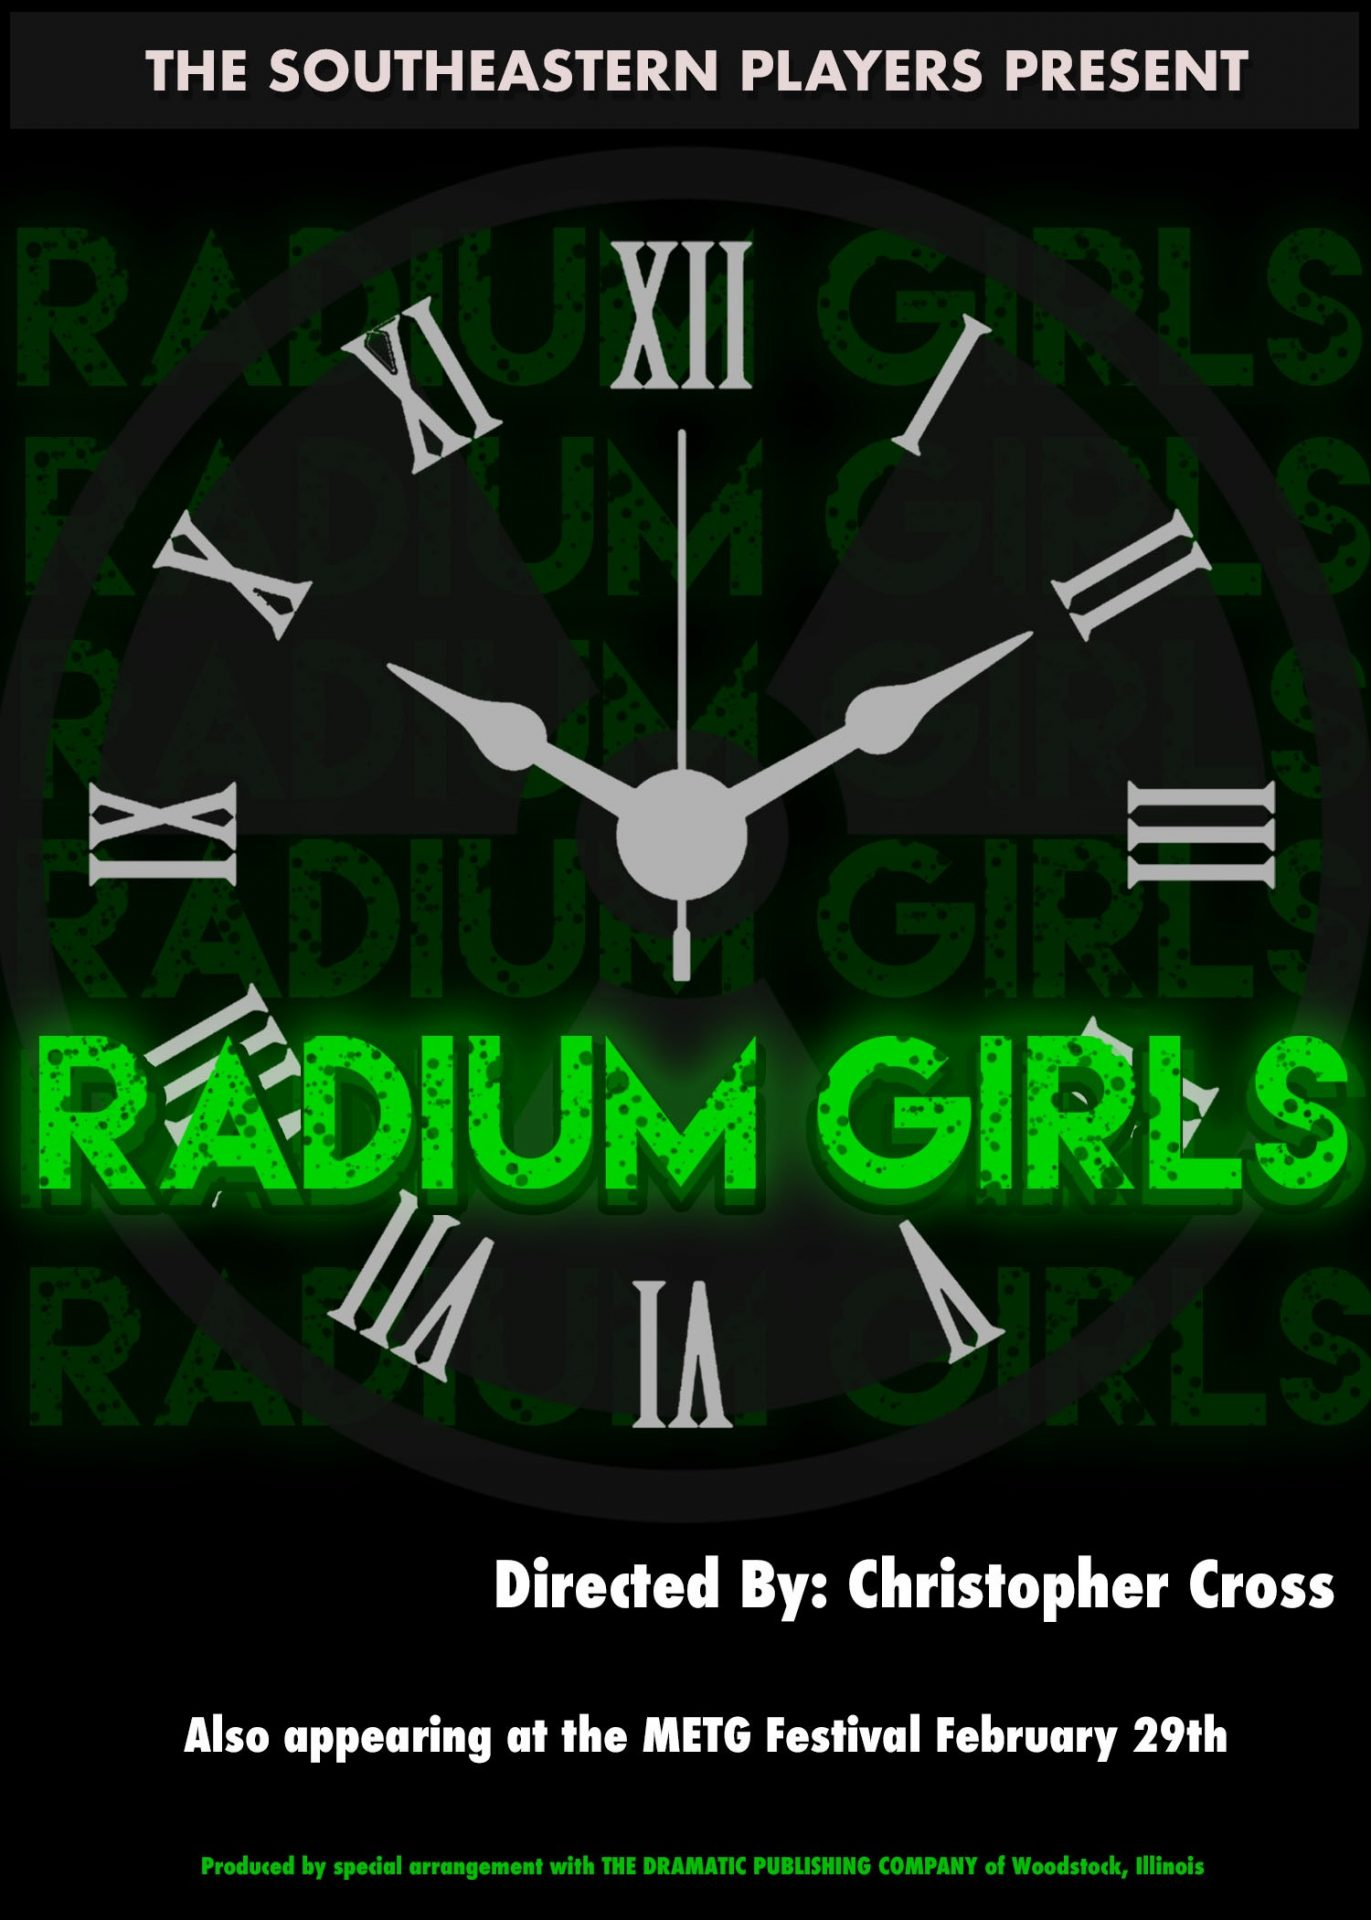 RADIUM GIRLS and Arts Appreciation Night